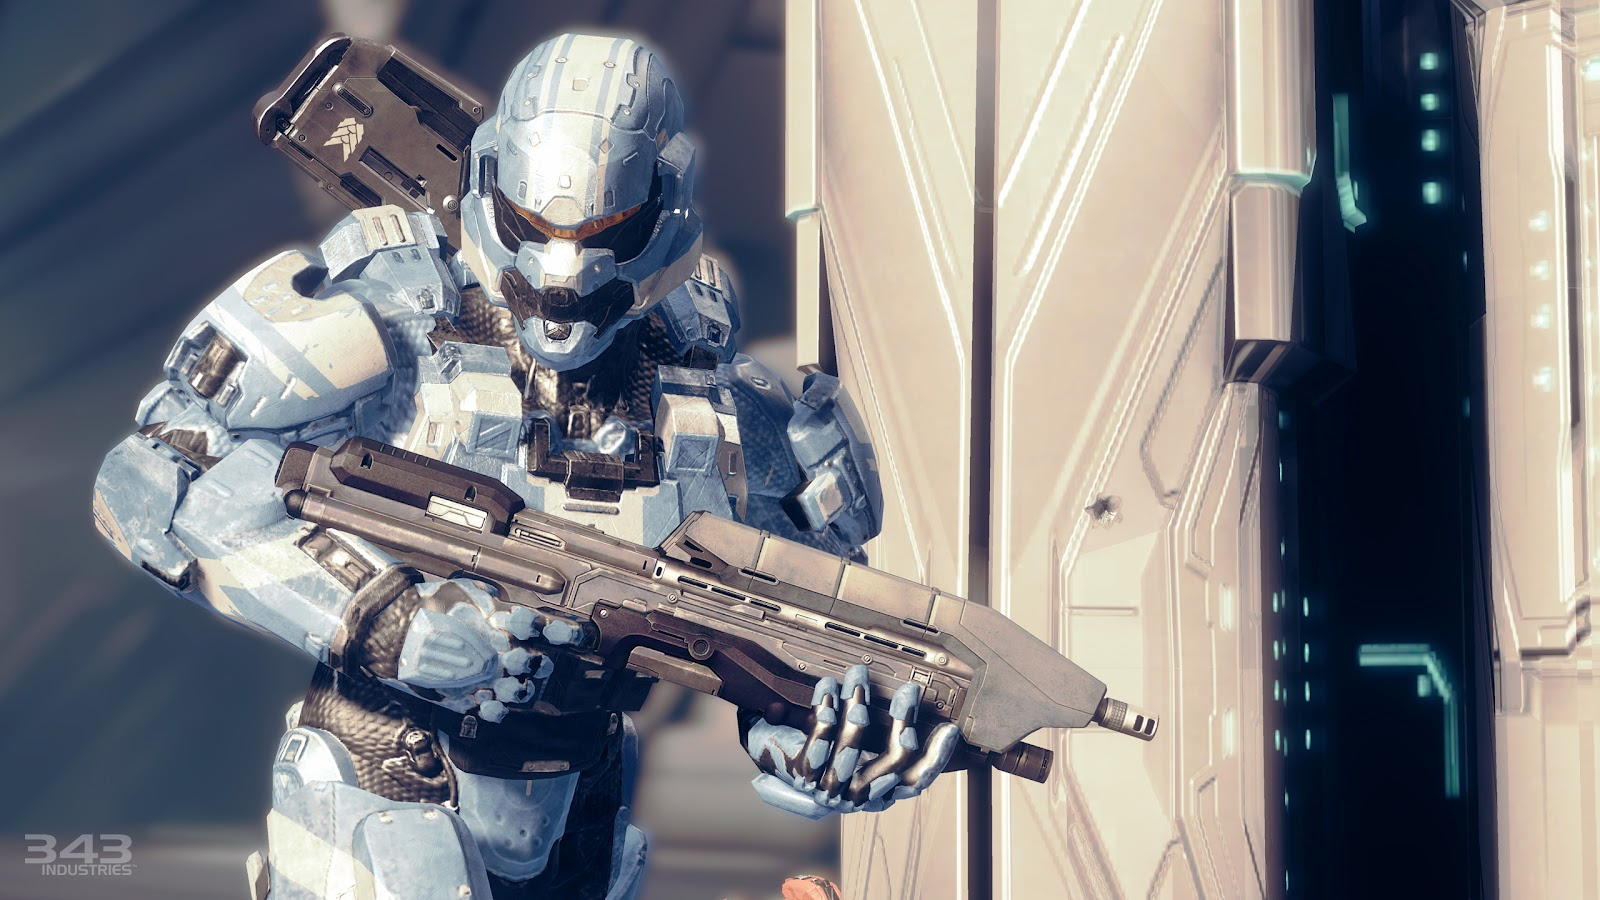 Halo 4 news new spartan ops and multiplayer pictures - Halo 4 photos ...